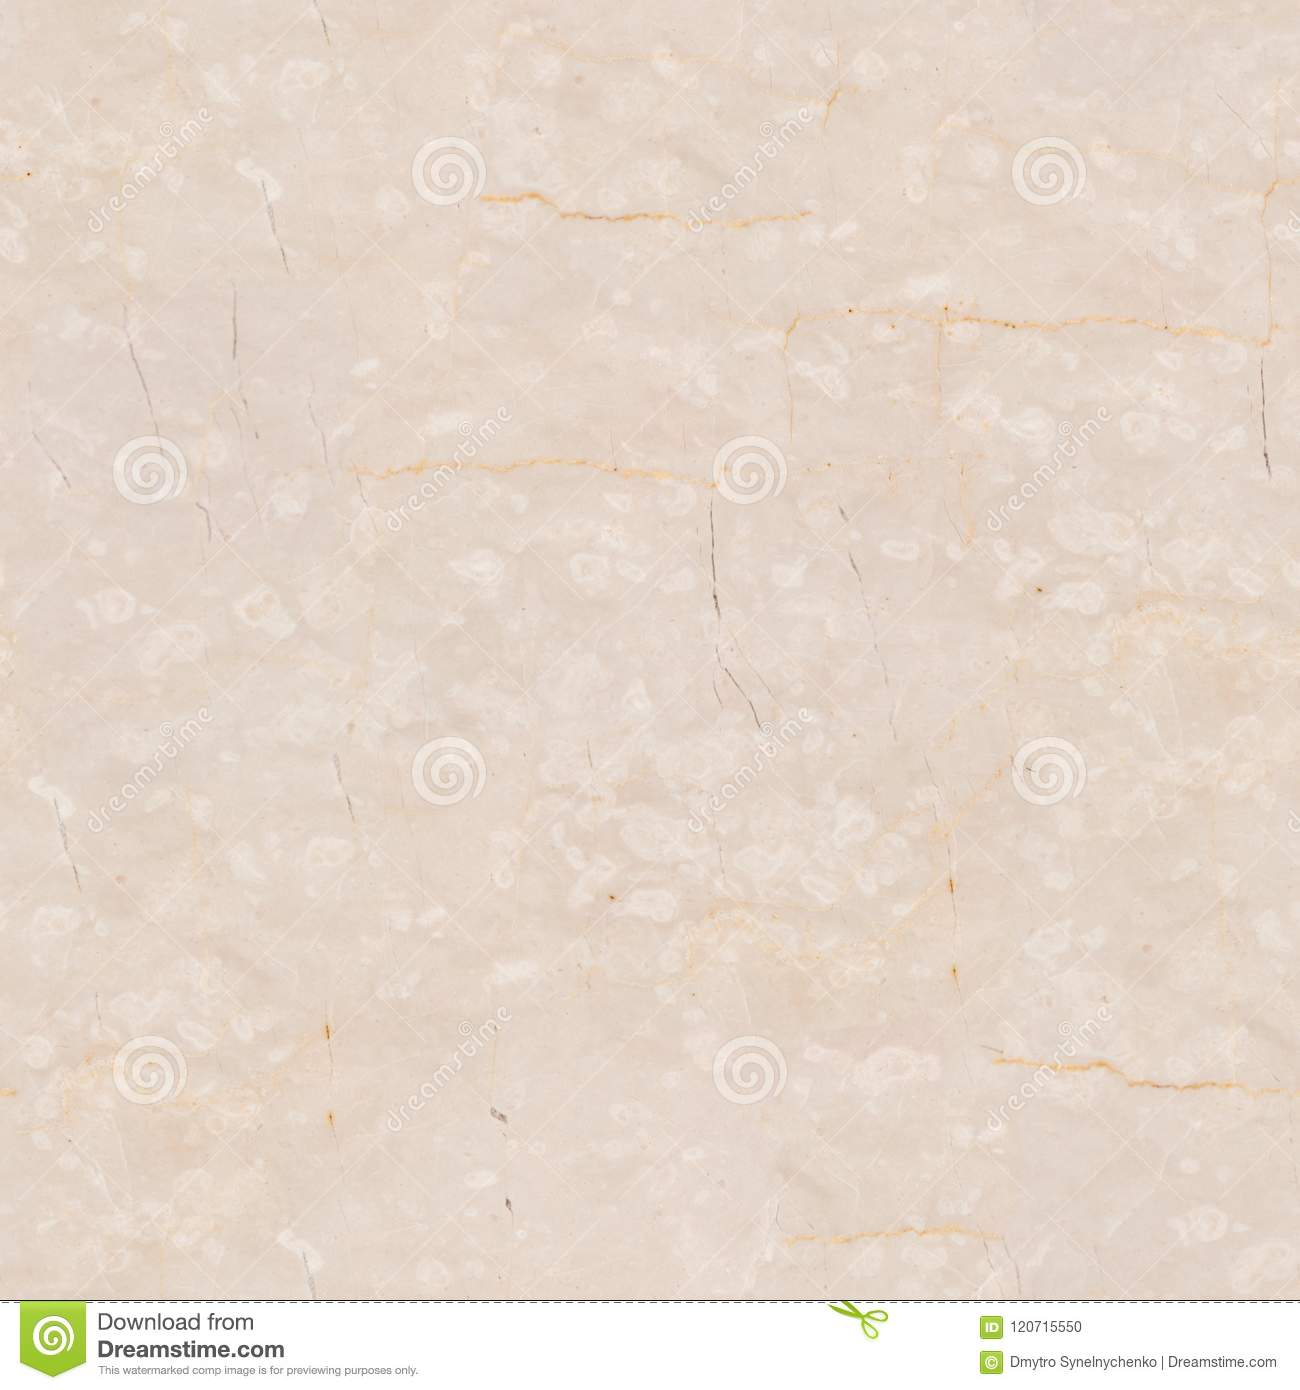 21 812 Marble Tile Texture Seamless Photos Free Royalty Free Stock Photos From Dreamstime